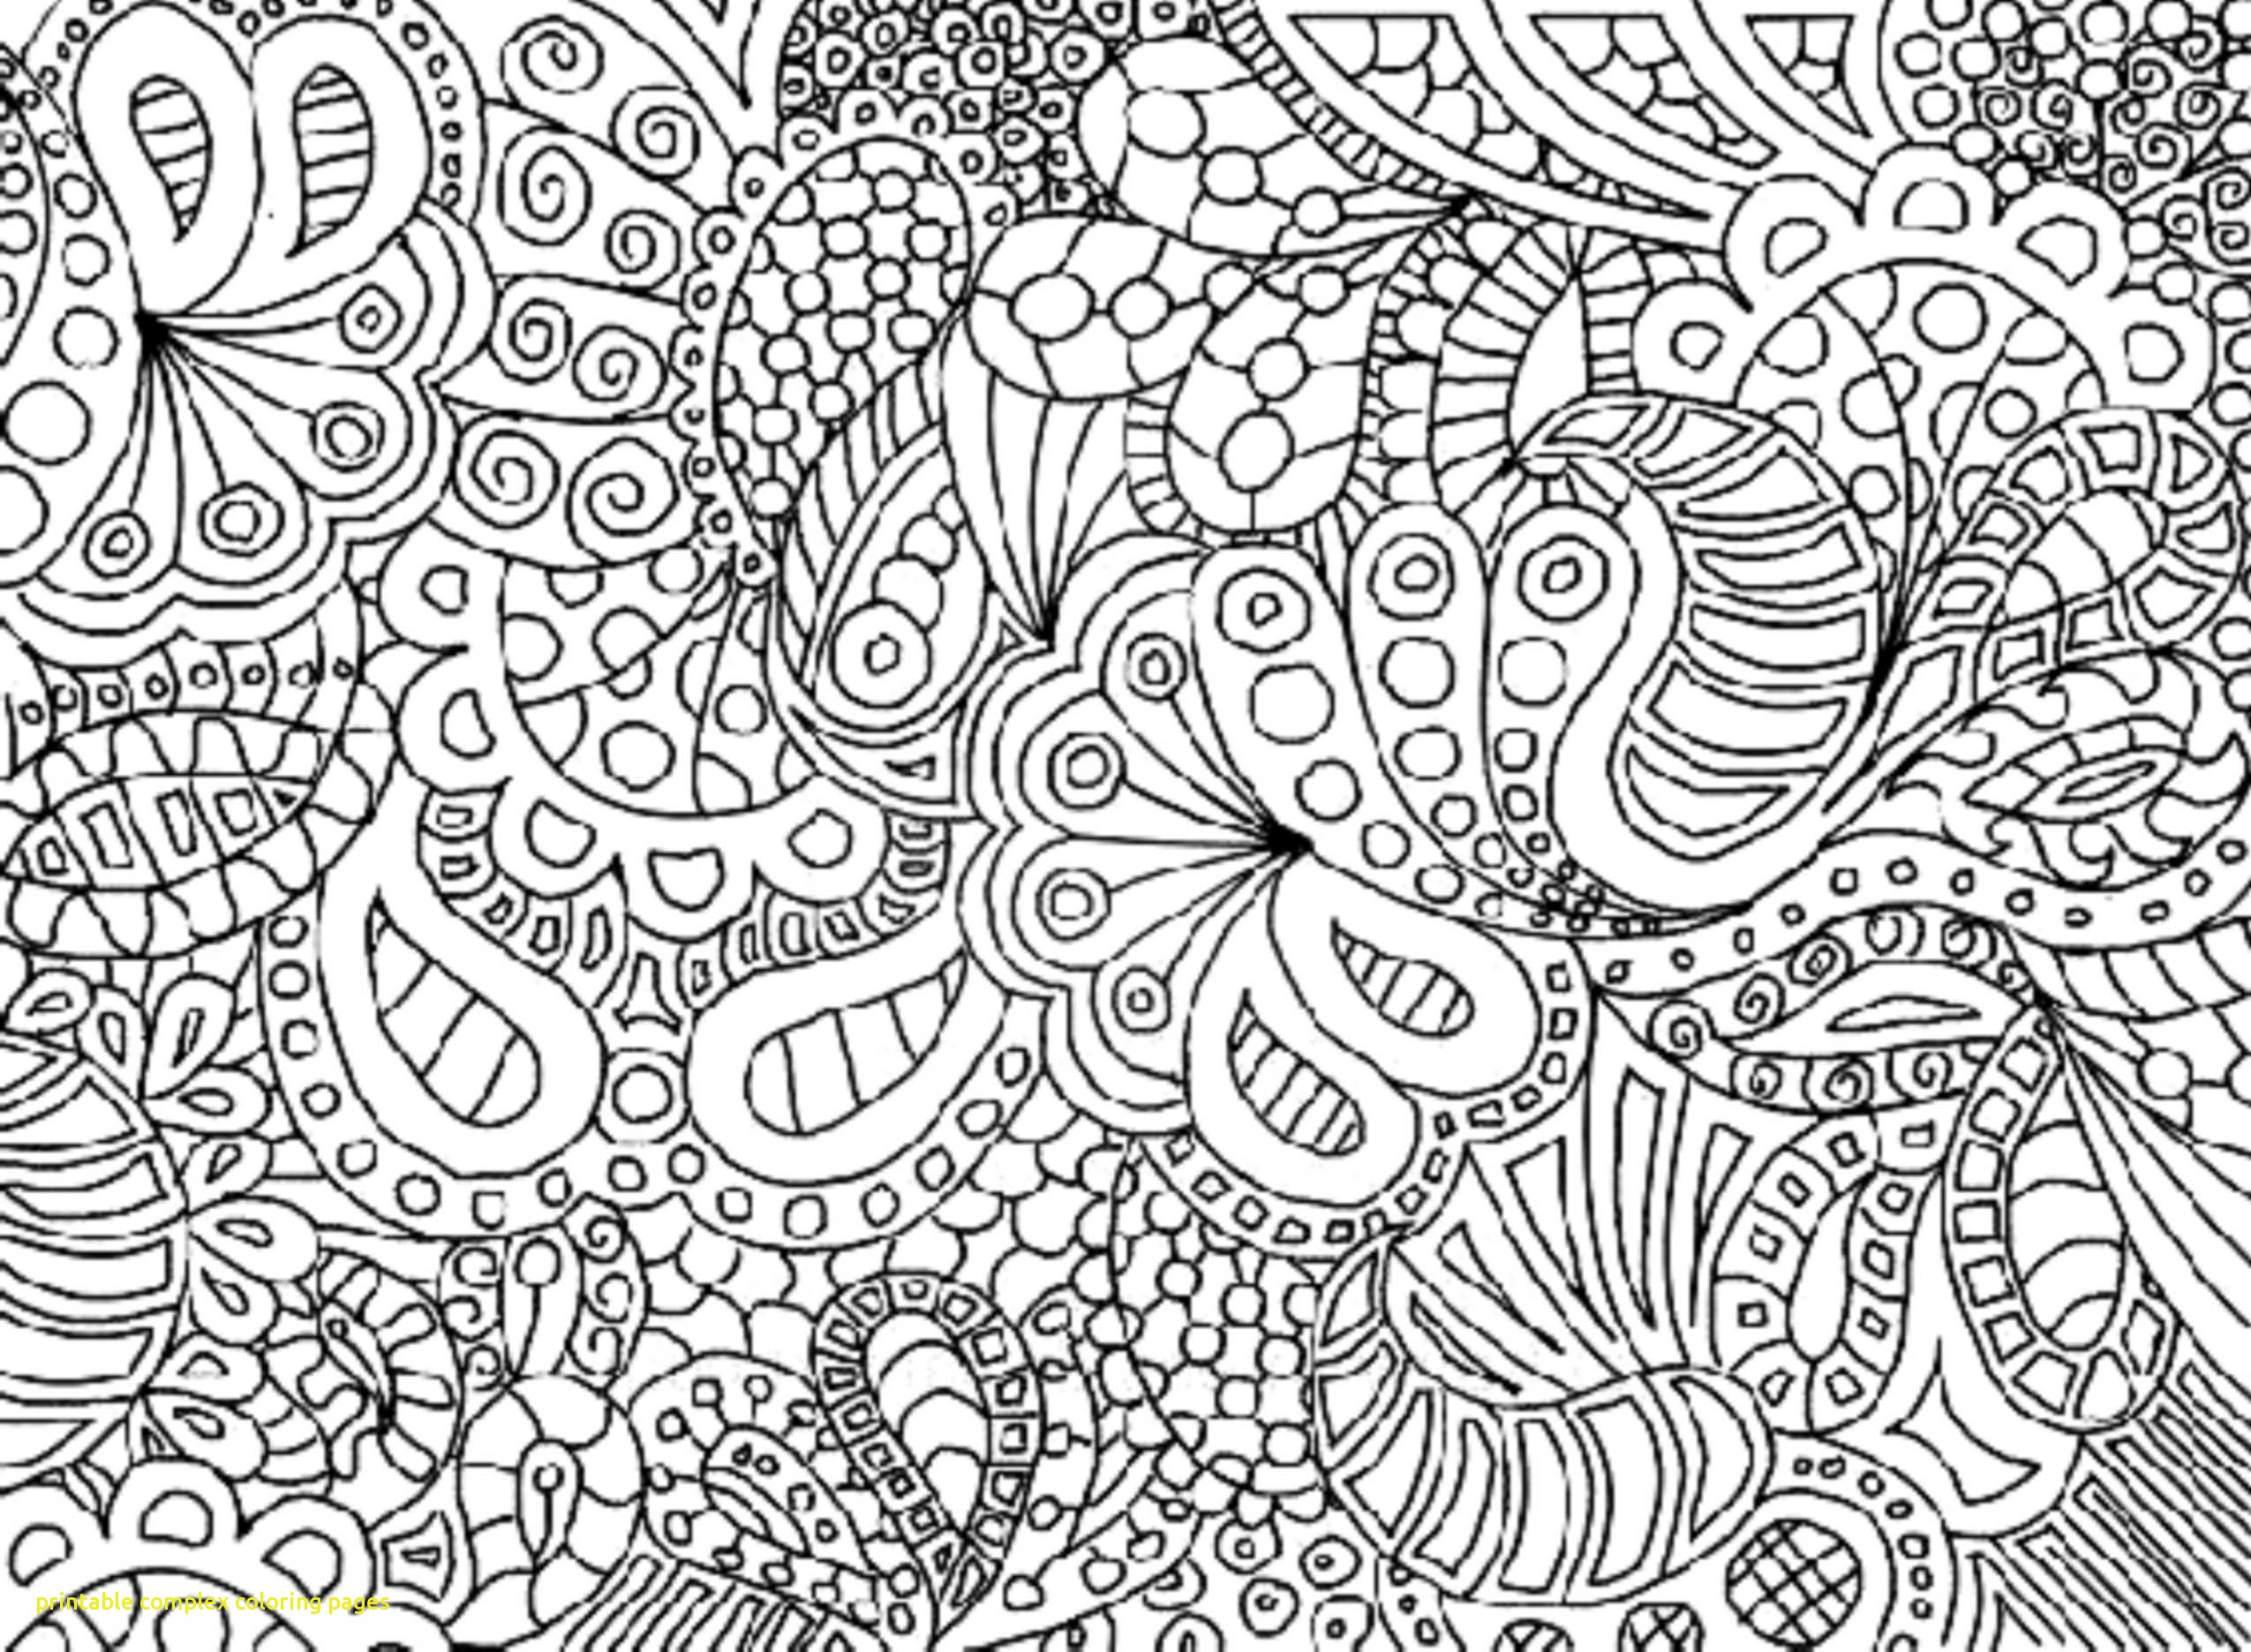 2550x1872 Complex Coloring Pages For Kids Bestappsforkids Com Throughout